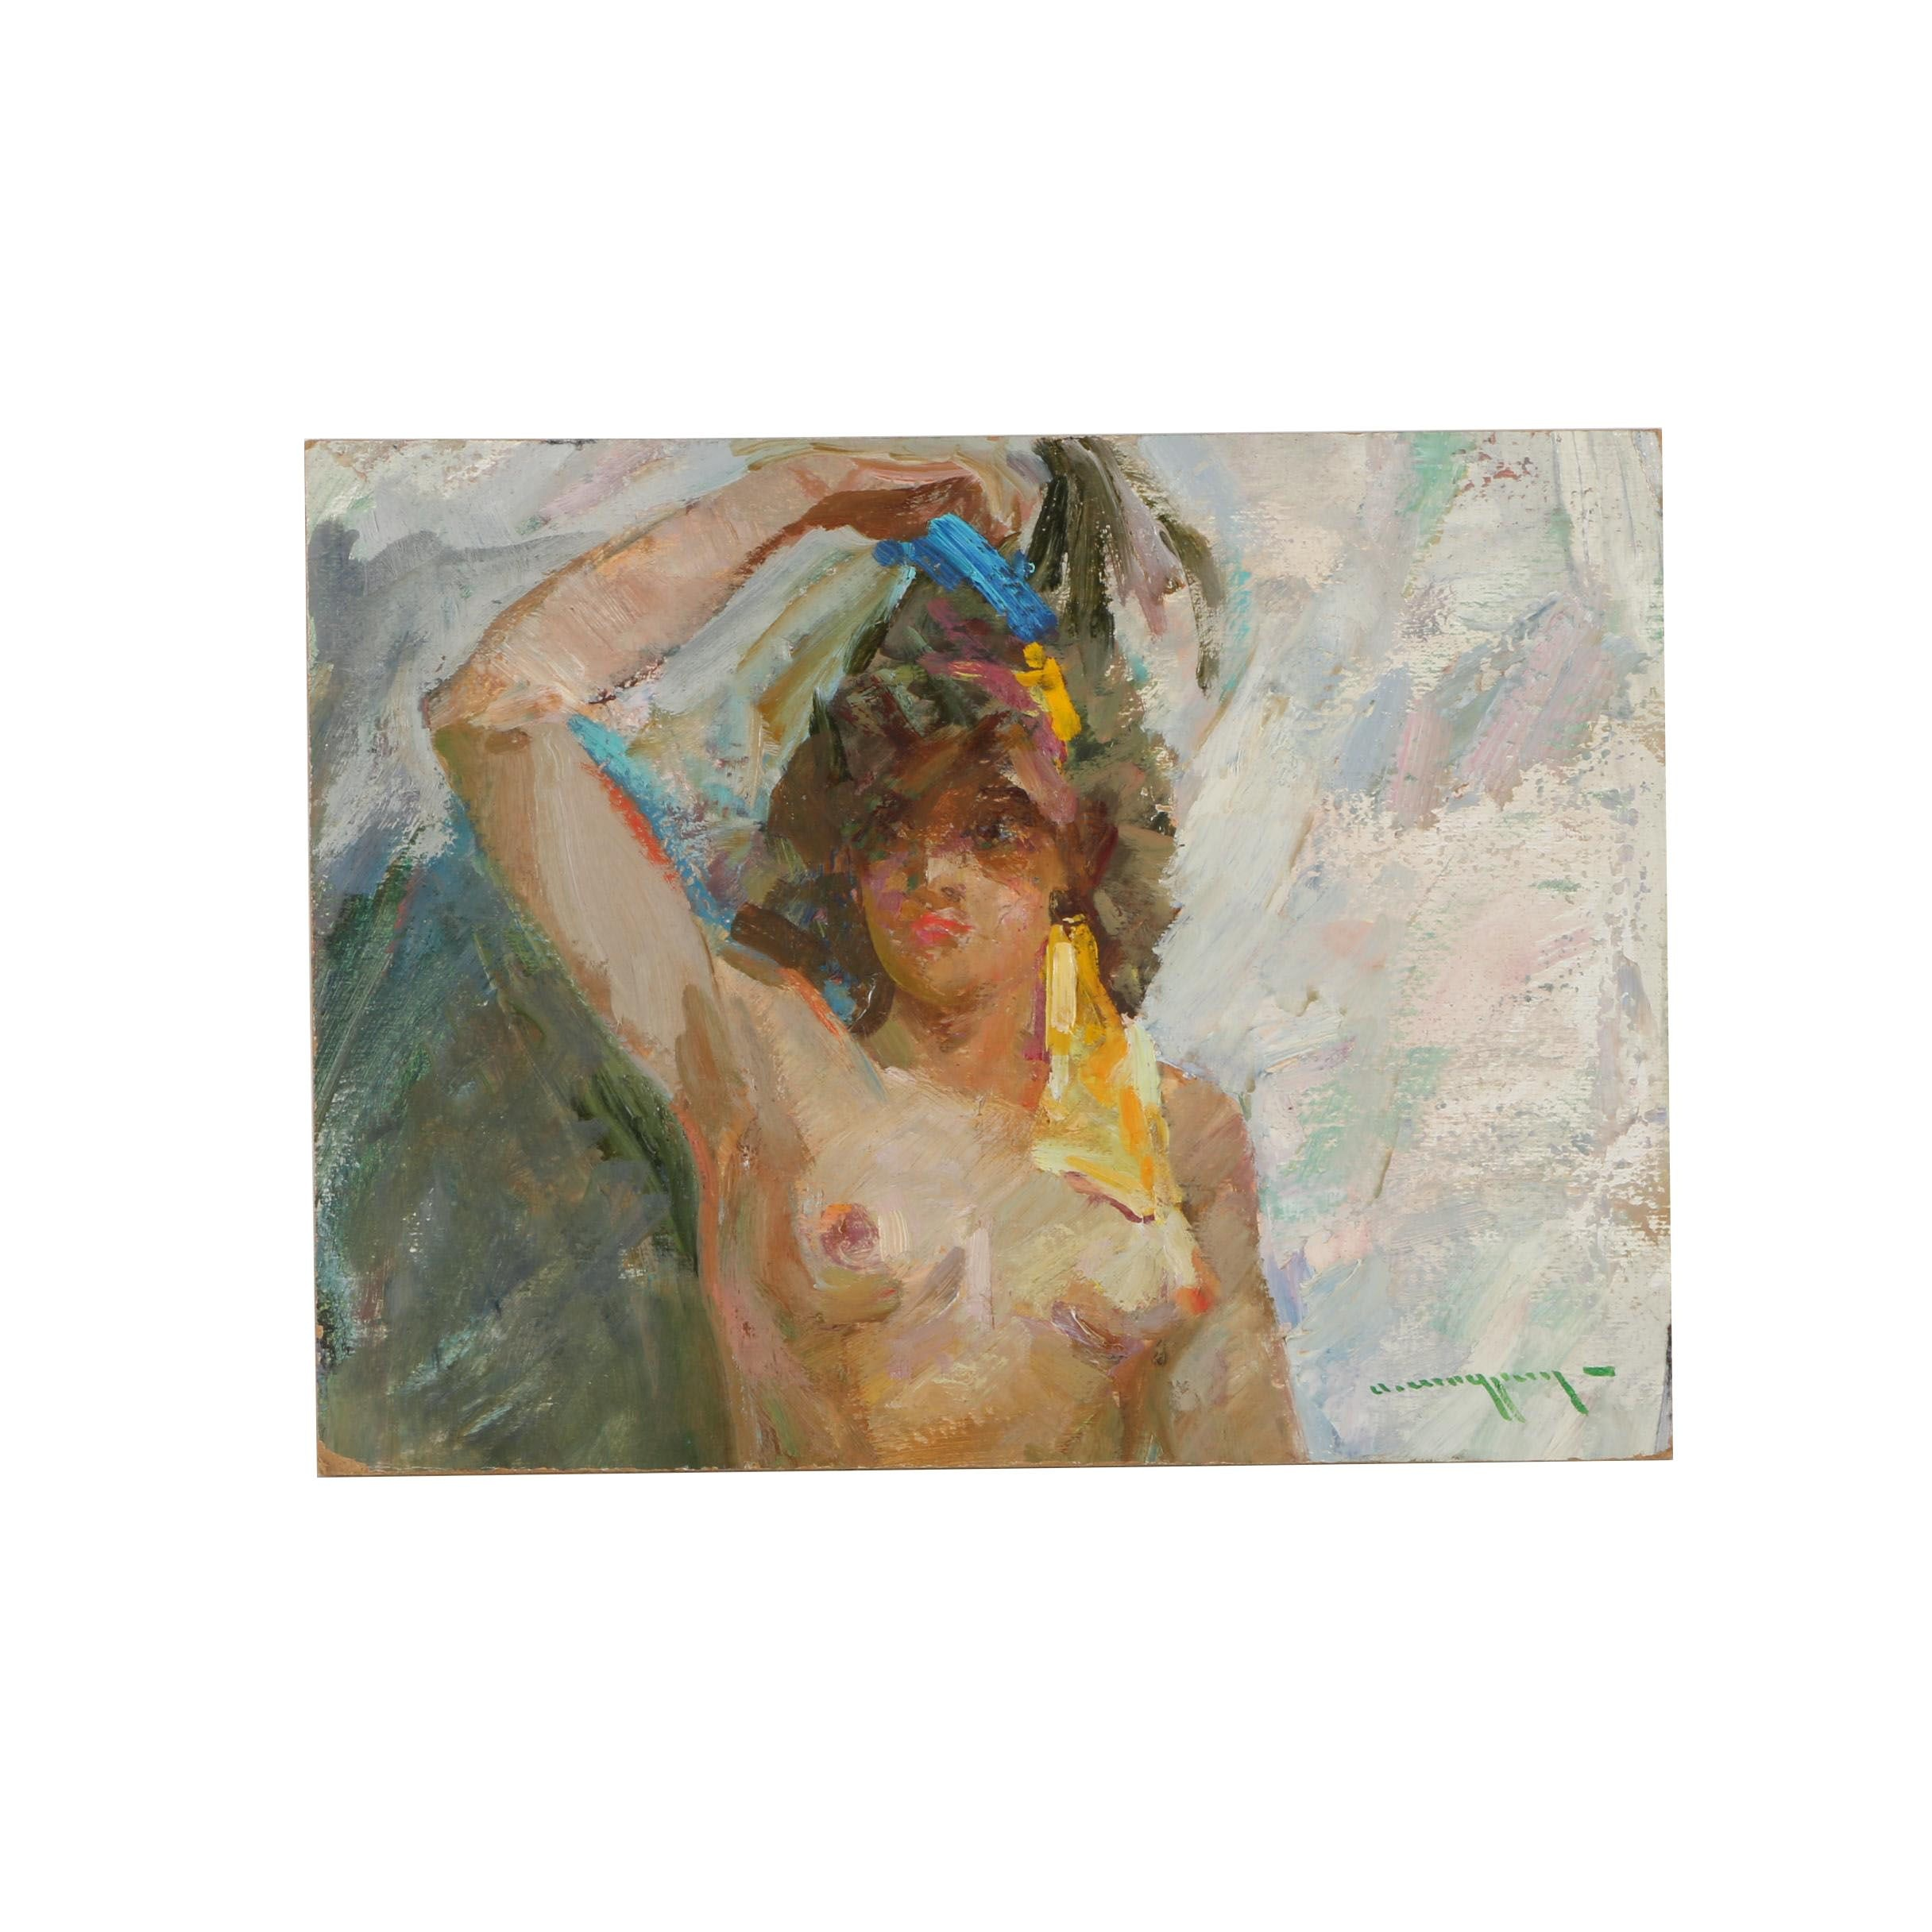 Alexander Shadrin Original Oil Figure Painting on Paper Board